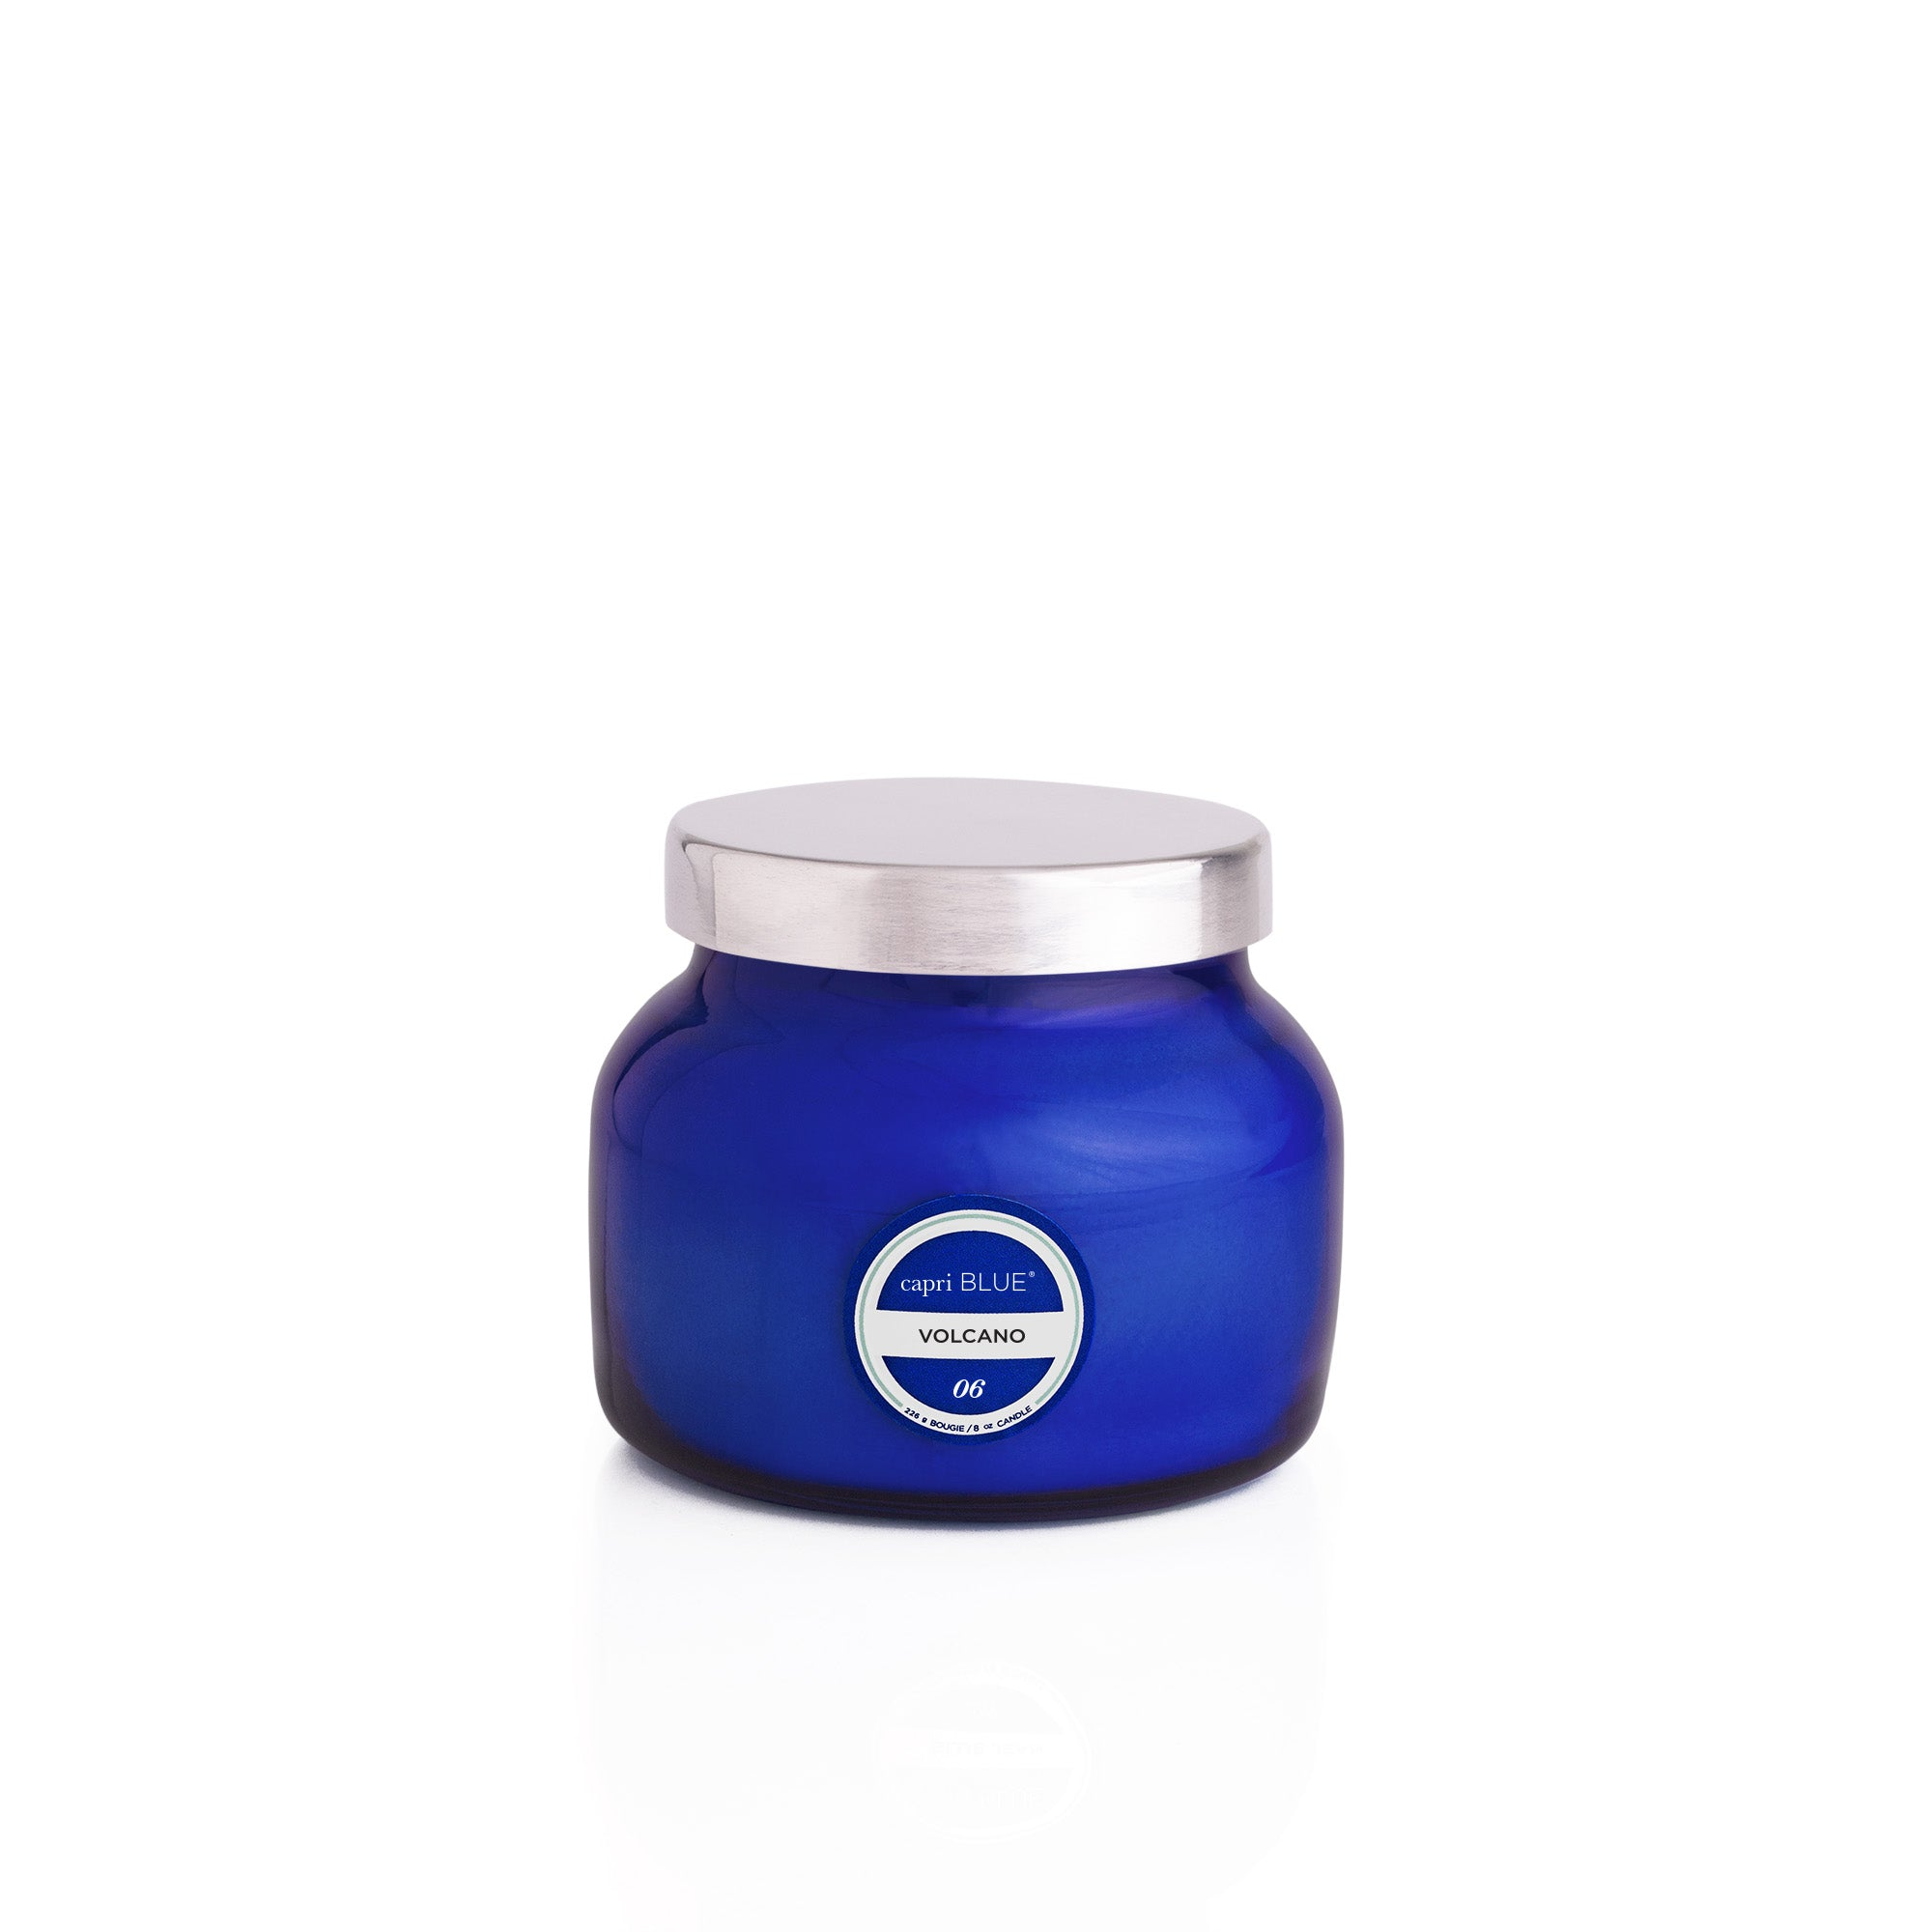 Capri Blue Candle has a signature silhouette and dynamic cobalt blue look. The Volcano scent is an energizing blend of exotic citrus and sugary notes. Feeling like you're in a scented paradise doesn't have to include flying miles away. Volcano Blue Petite Jar, 8 oz.